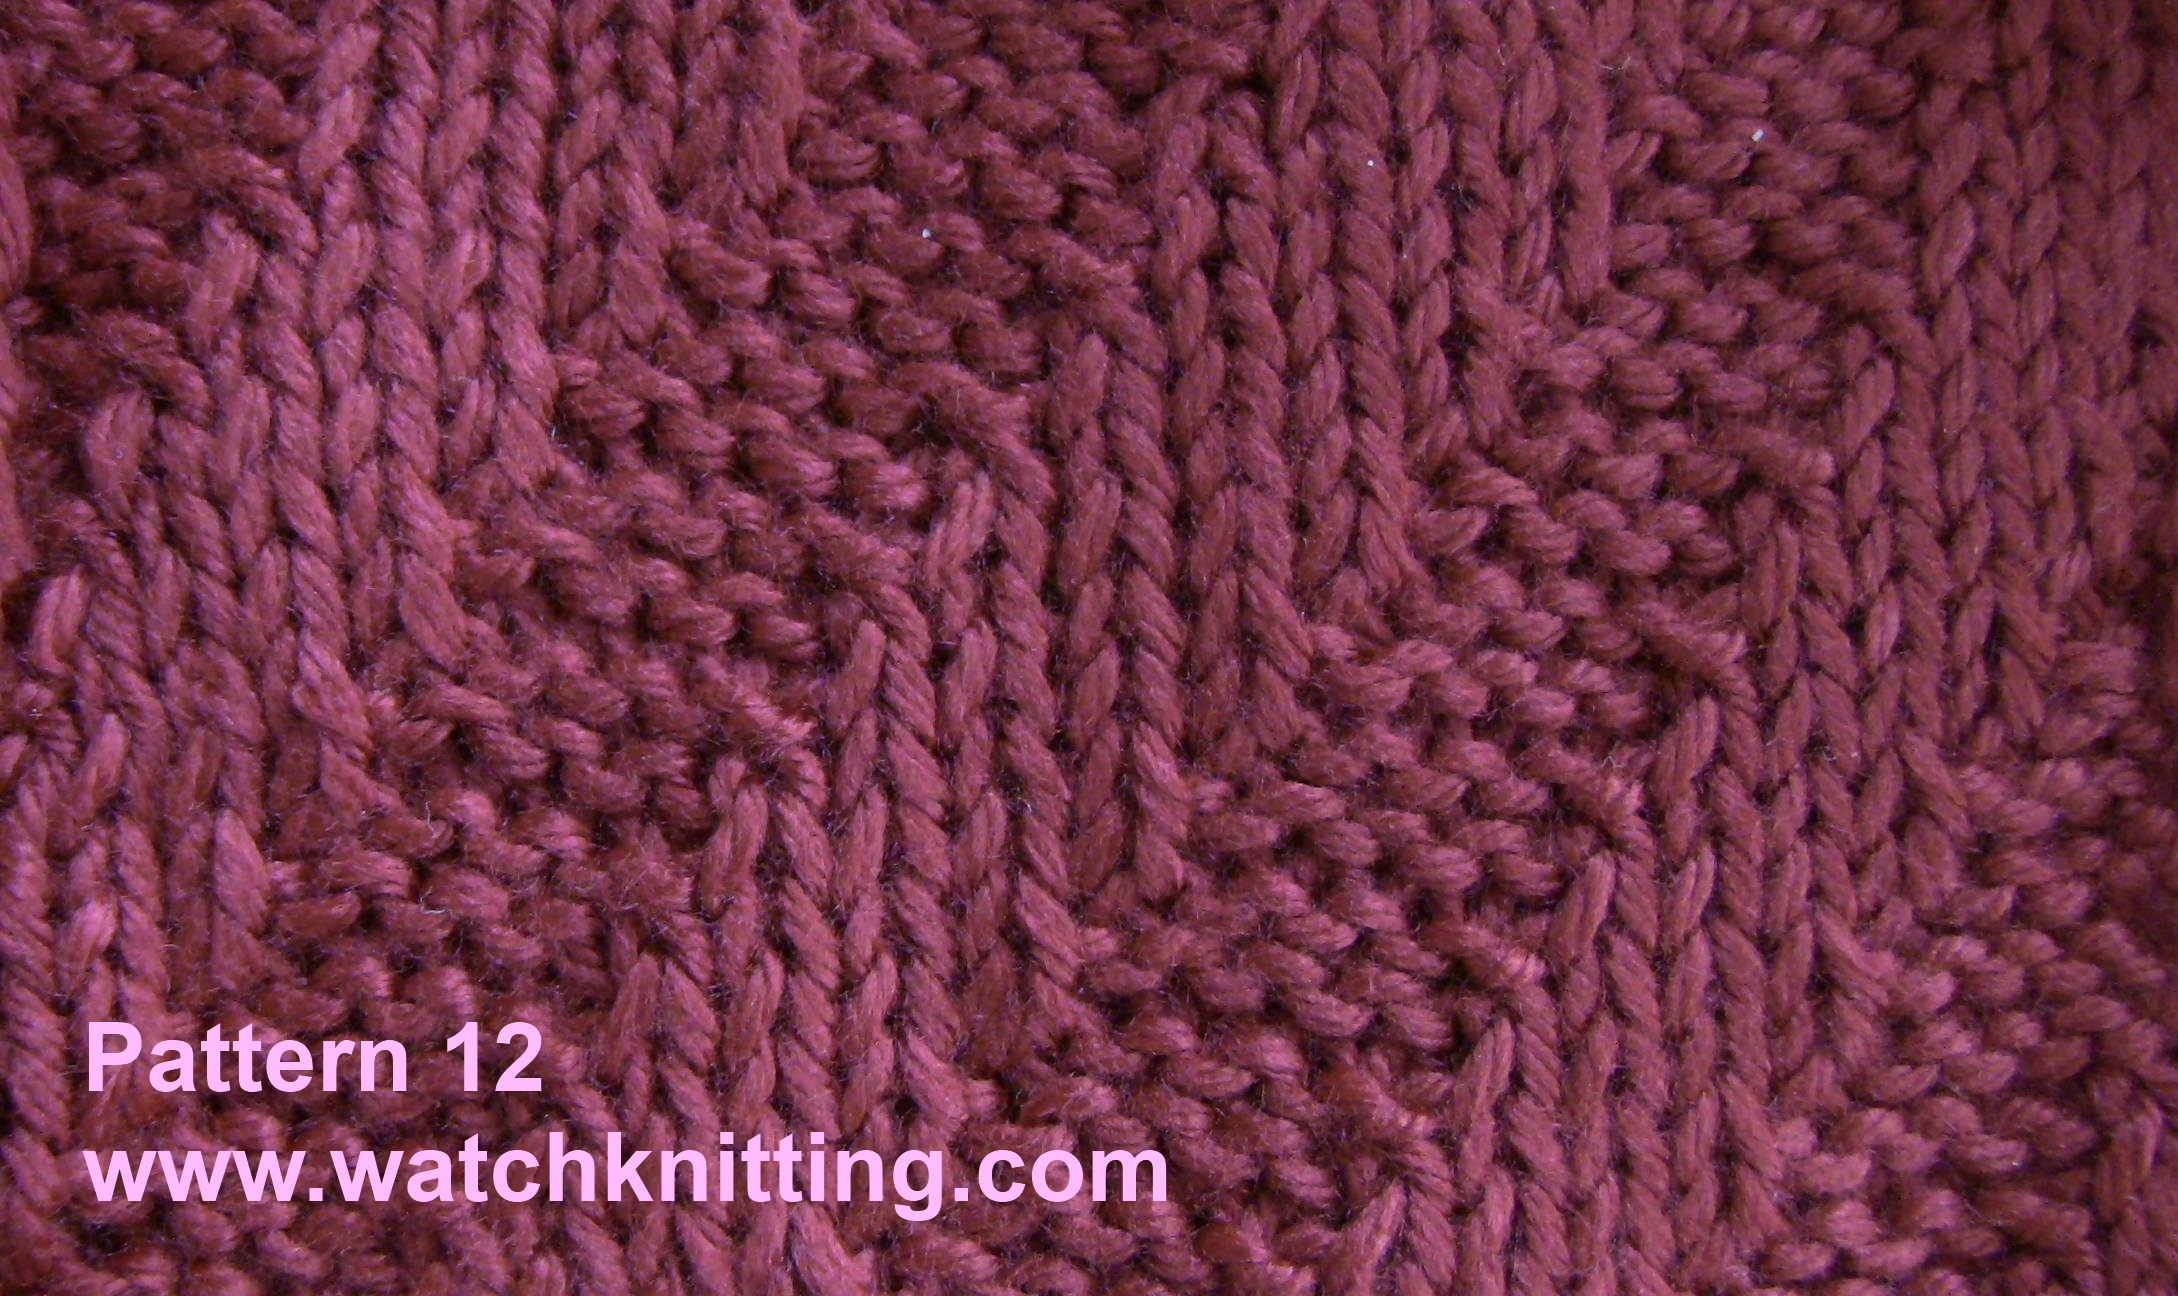 Knitting Stitches Basic knitting stitches